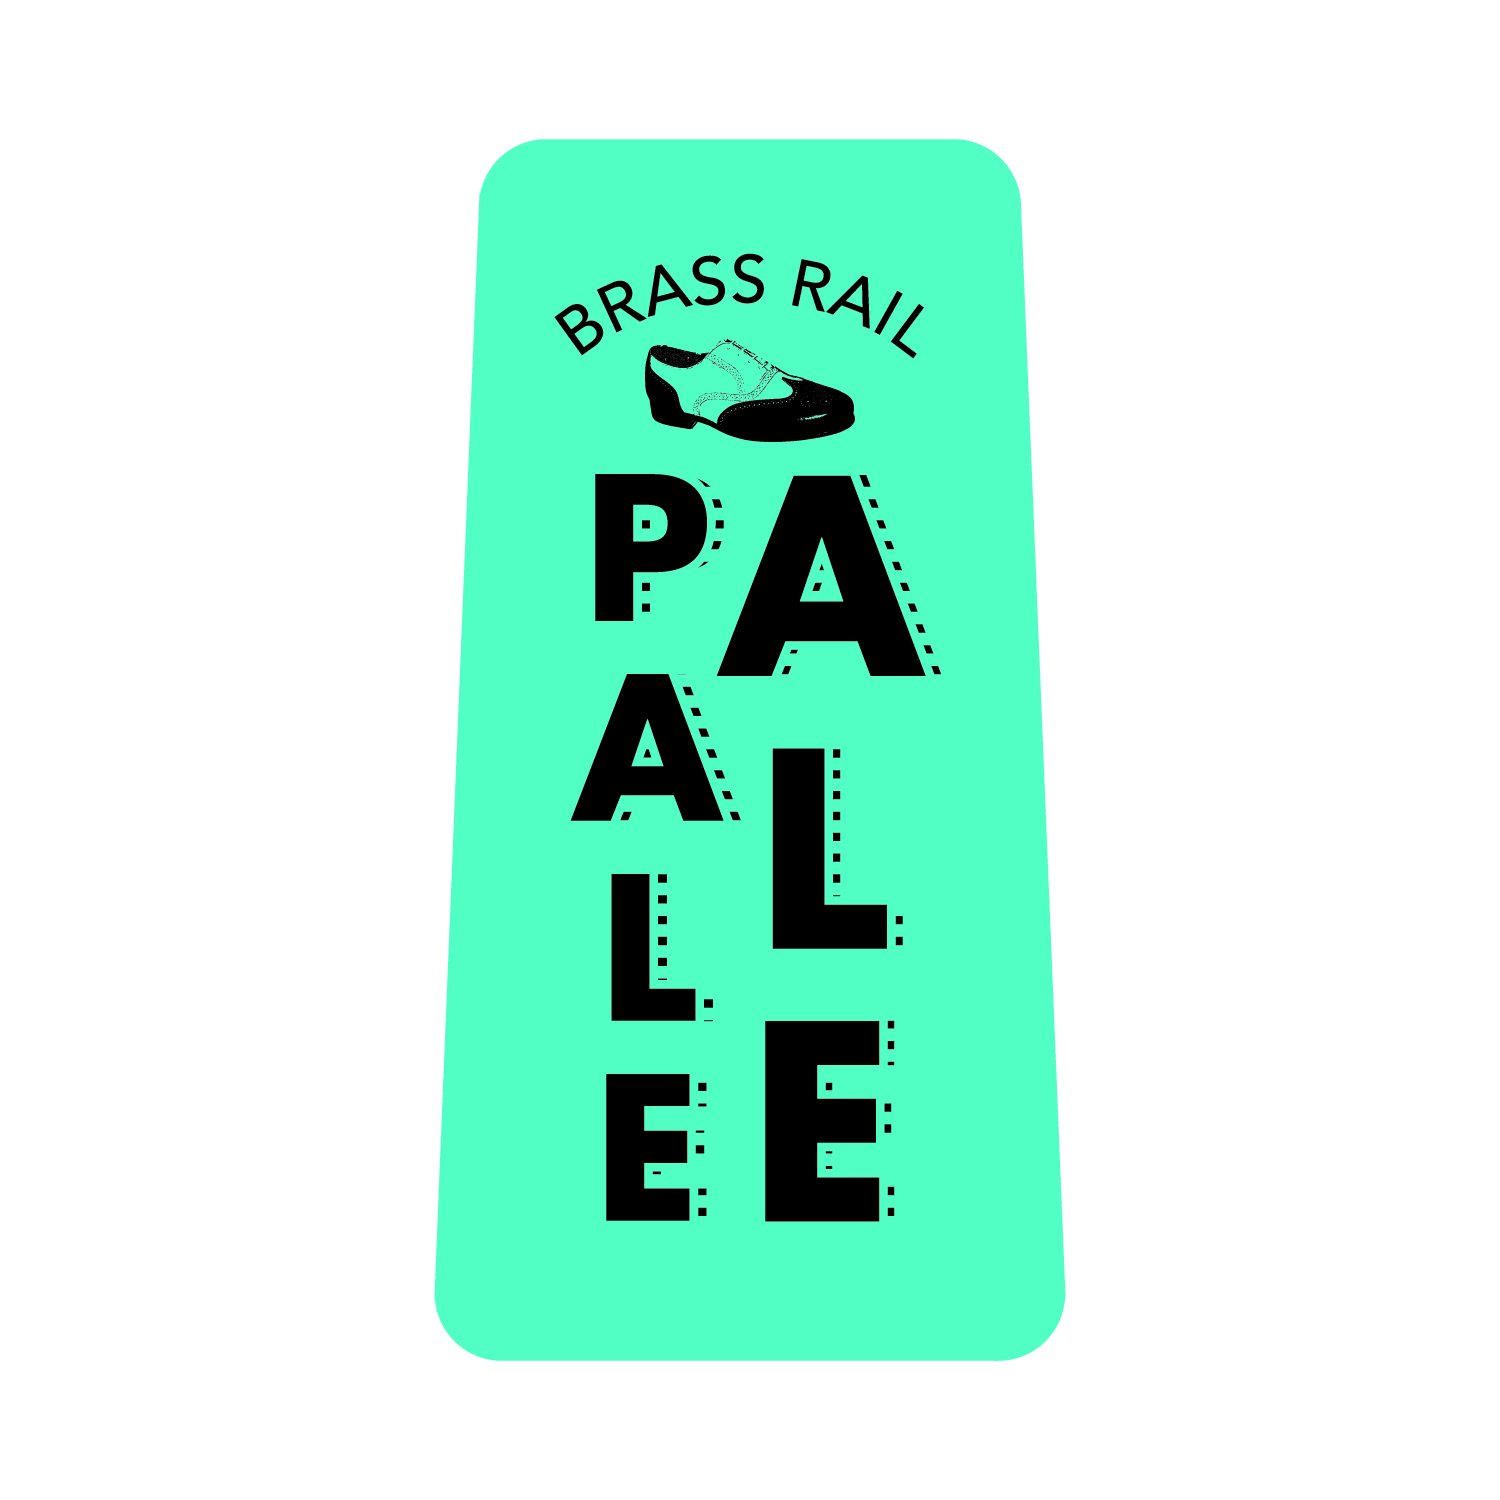 - BRASS RAIL PALE ALE - 5.5% ABV, 39 IBU's; American Pale Ale; Brass Rail Pale Ale pays homage to the West Coast and the beers that started the Craft Beer Movement.  Made exclusively with 'C' hops and 5 malts, this American Pale will make you want to say, 'Yes, I would like to put my foot on the rail and blow the foam off some suds!'